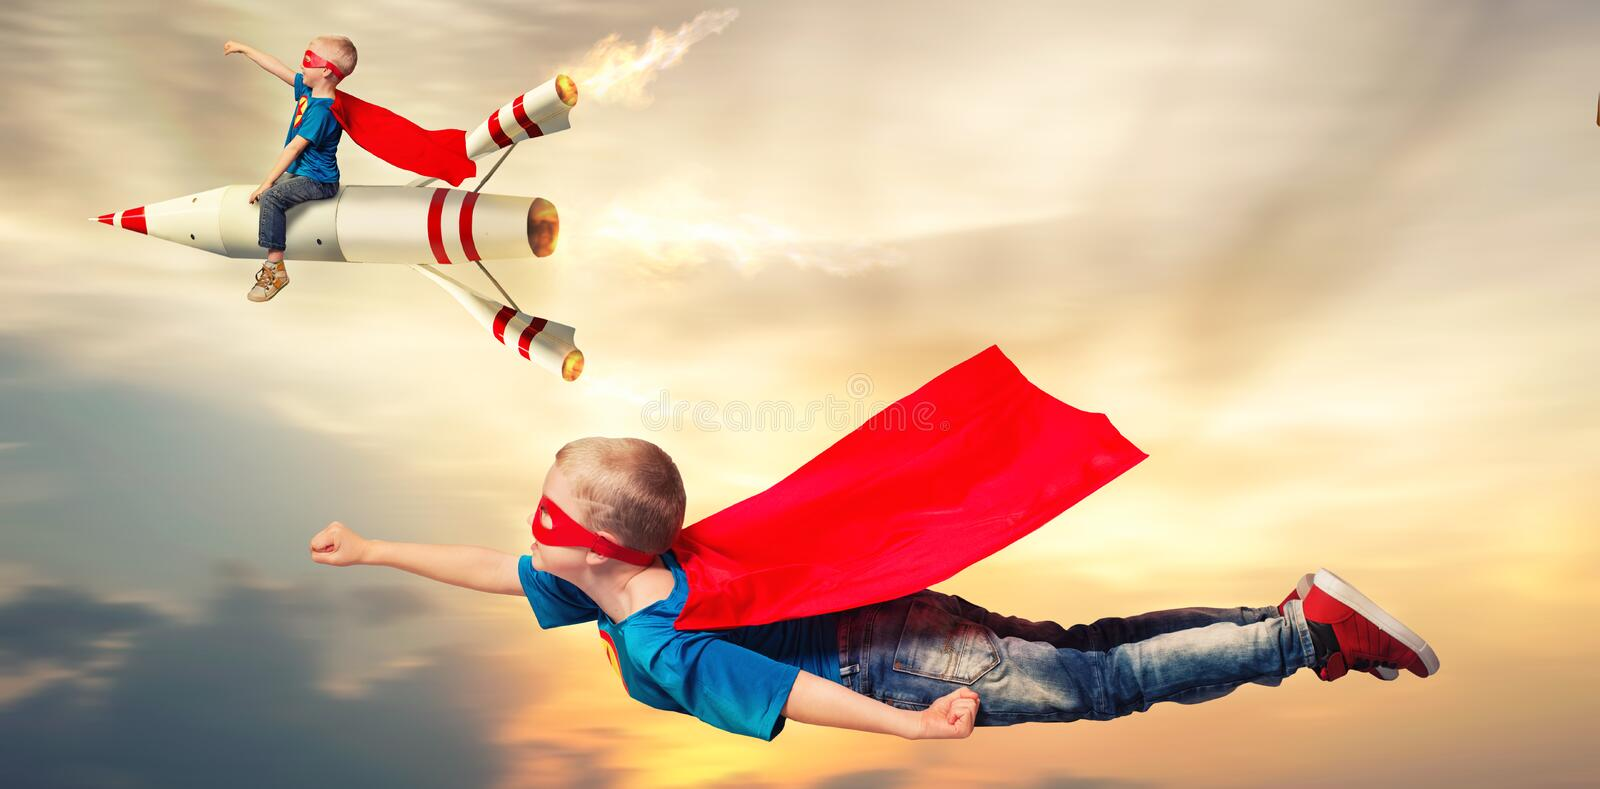 Children in superhero costumes fly and show super abilities. Boys in superhero costume guard the planet.Boys show super abilities stock photography